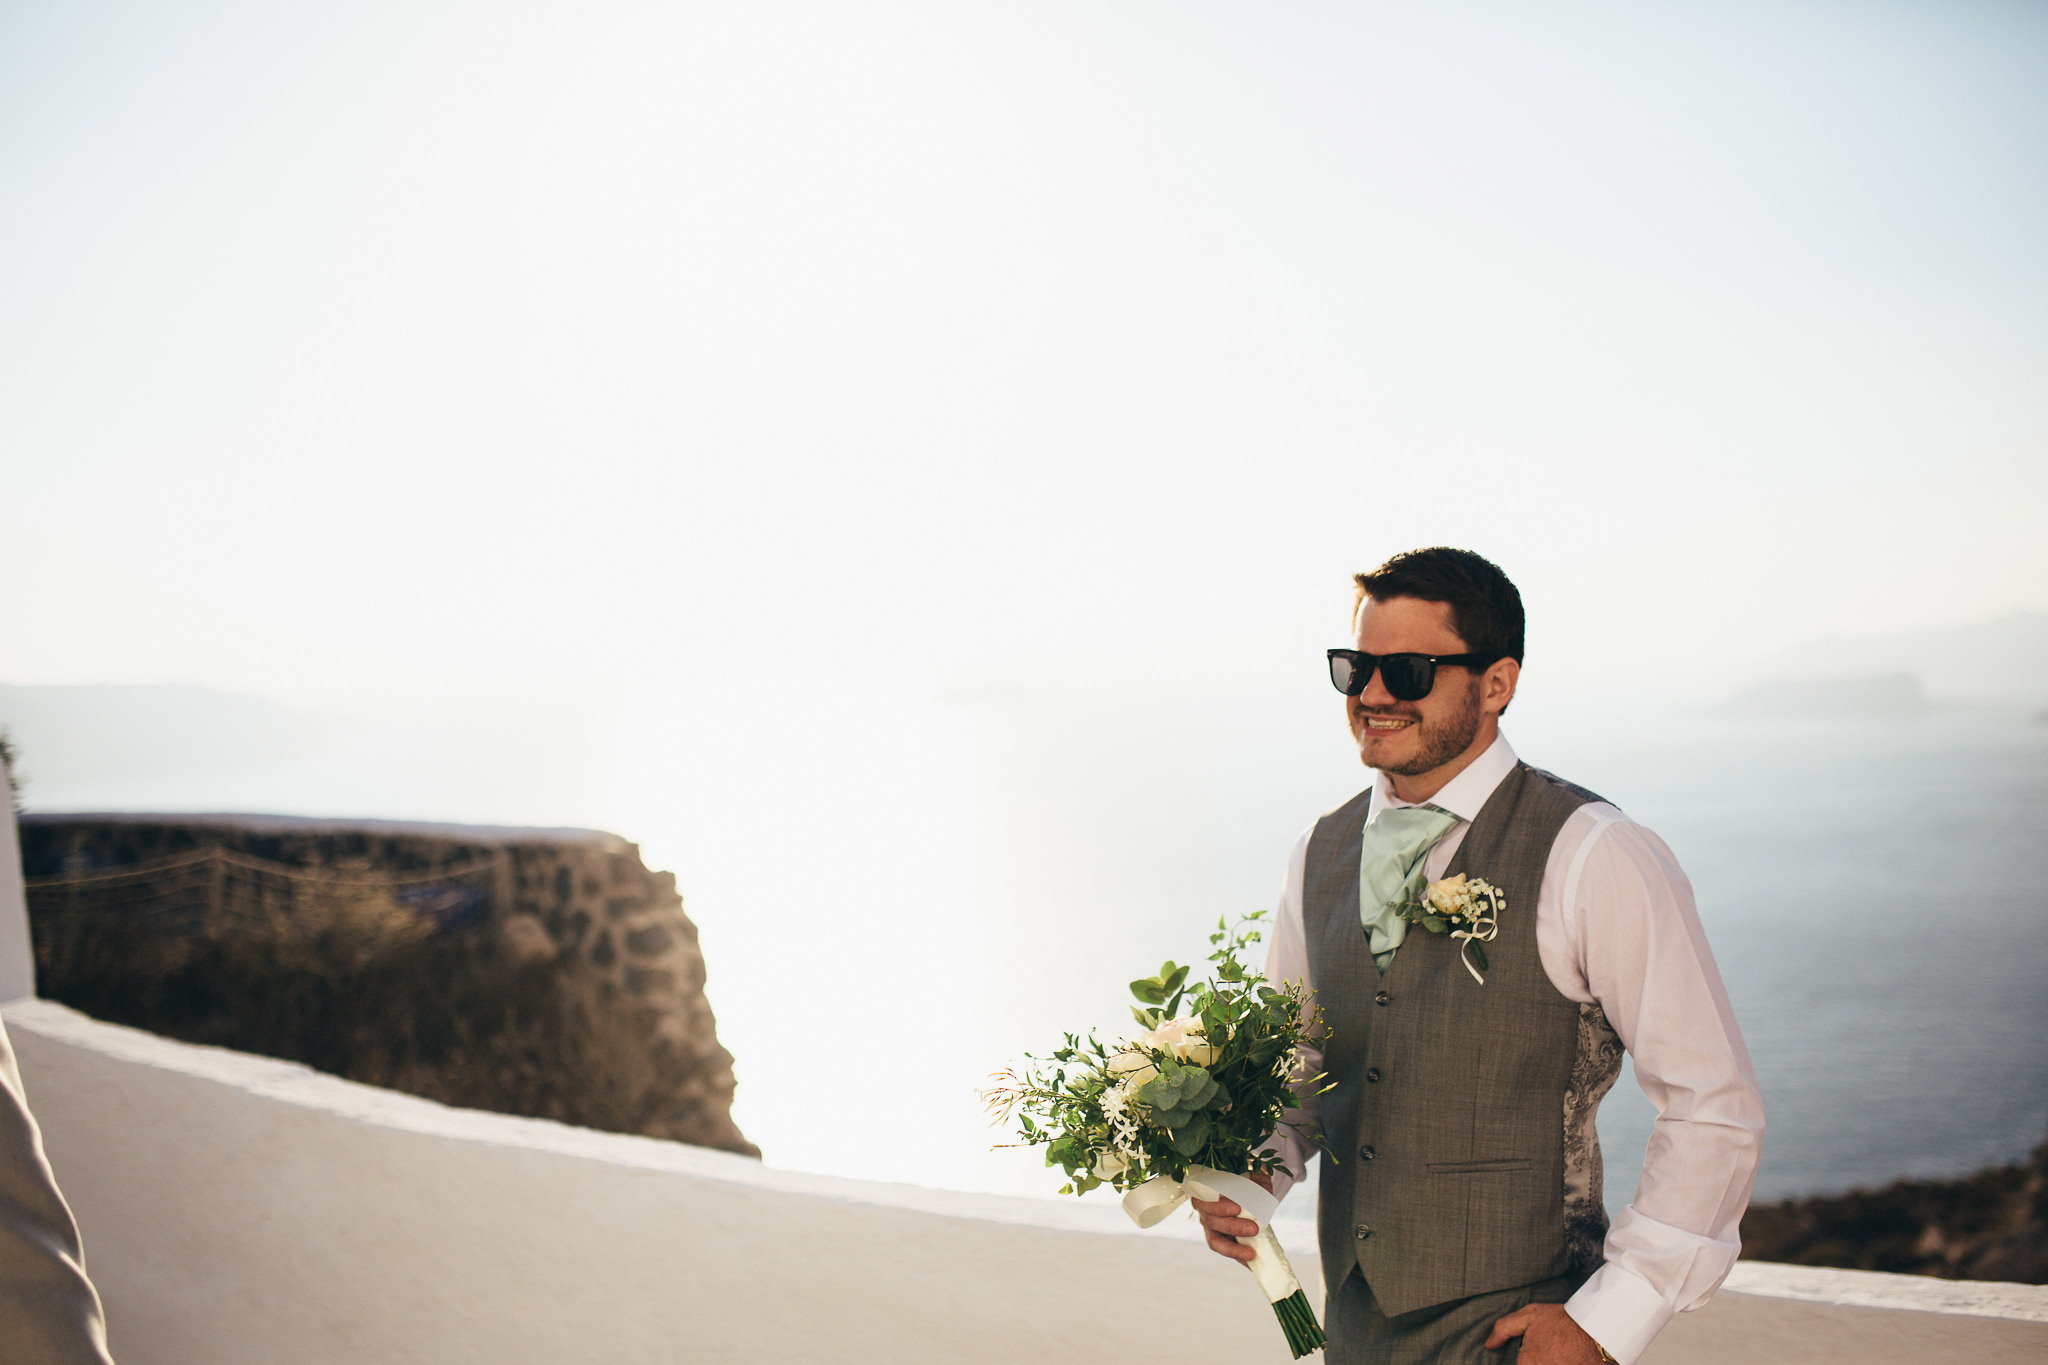 santorini-wedding-photographer-destination-90035